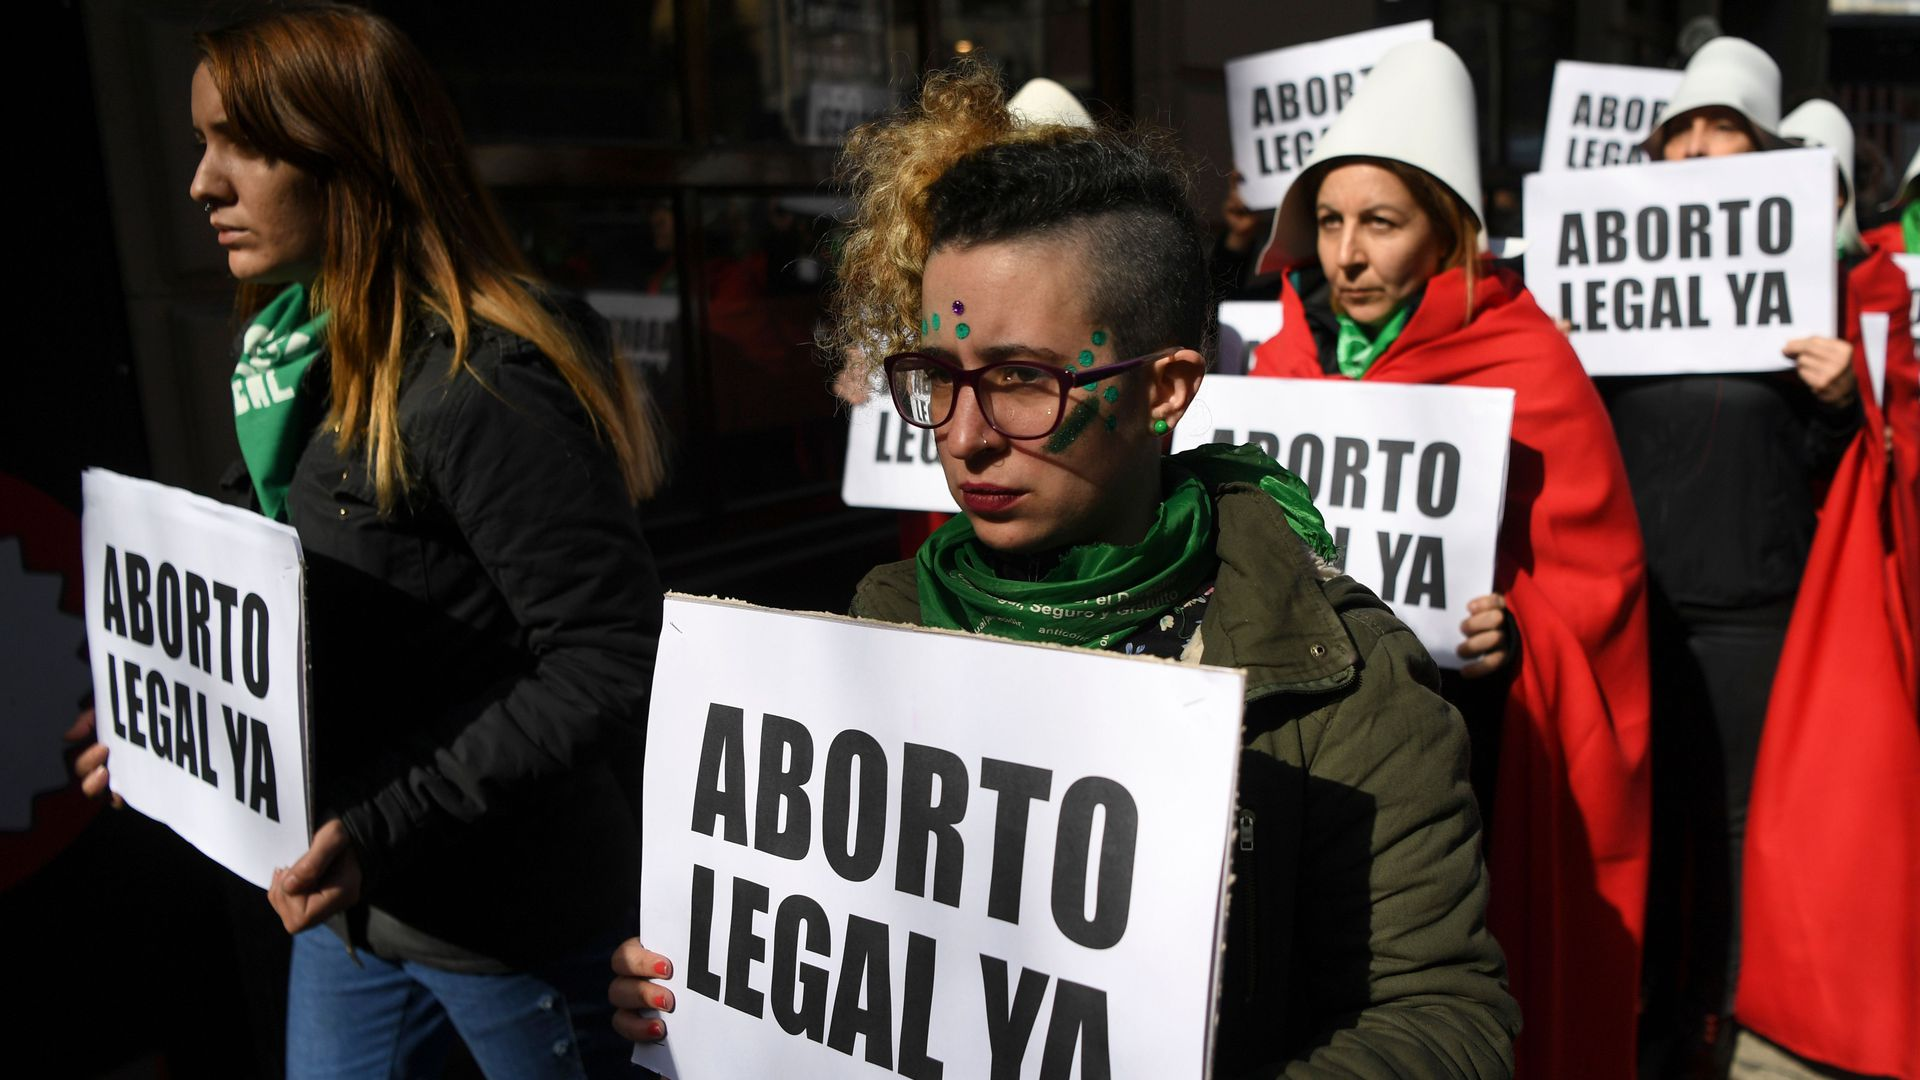 Demonstrators in support of the legalization of abortion outside the National Congress in Buenos Aires. Photo: Eitan Abramovich/AFP/Getty Images